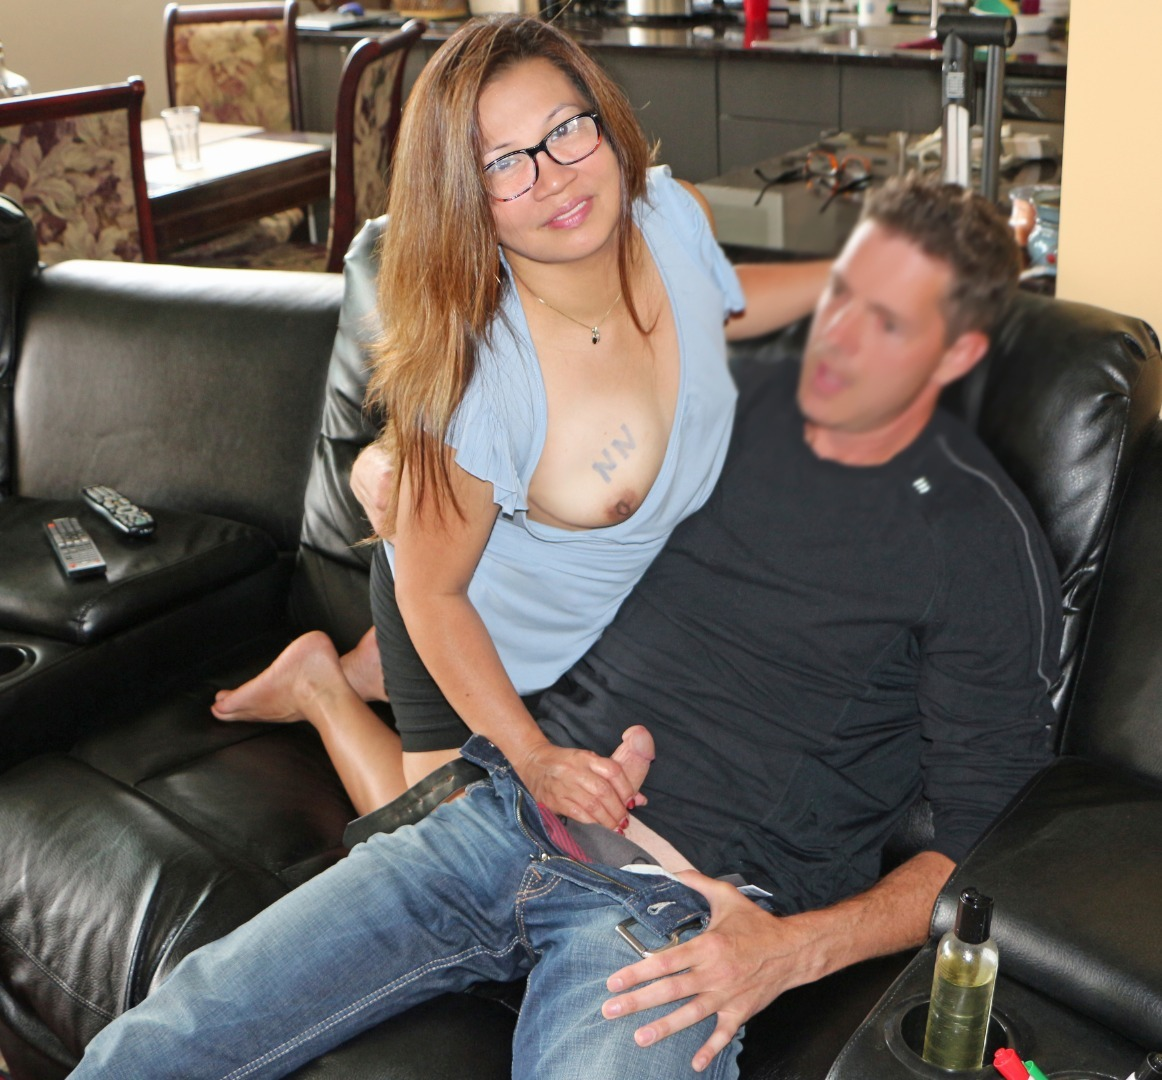 brandi belle cum in mouth please On a first date! #titout #glasses #handjob #couple #asian #filipina #sarah654